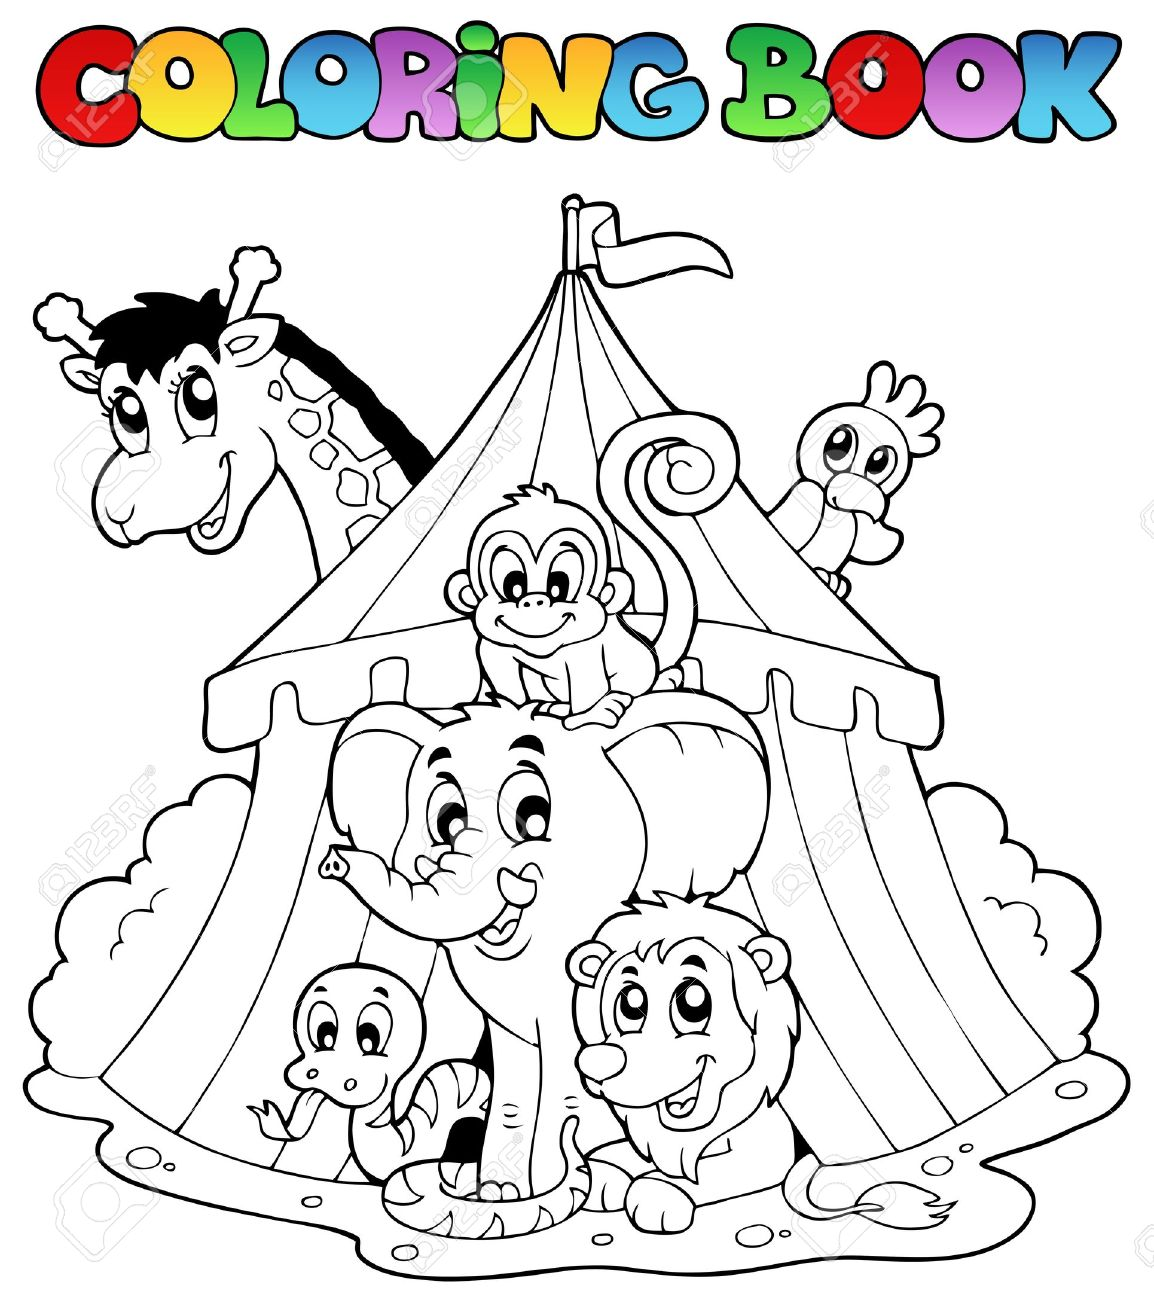 coloring book animals in tent vector illustration stock vector 11654741 - Coloring Book Animals